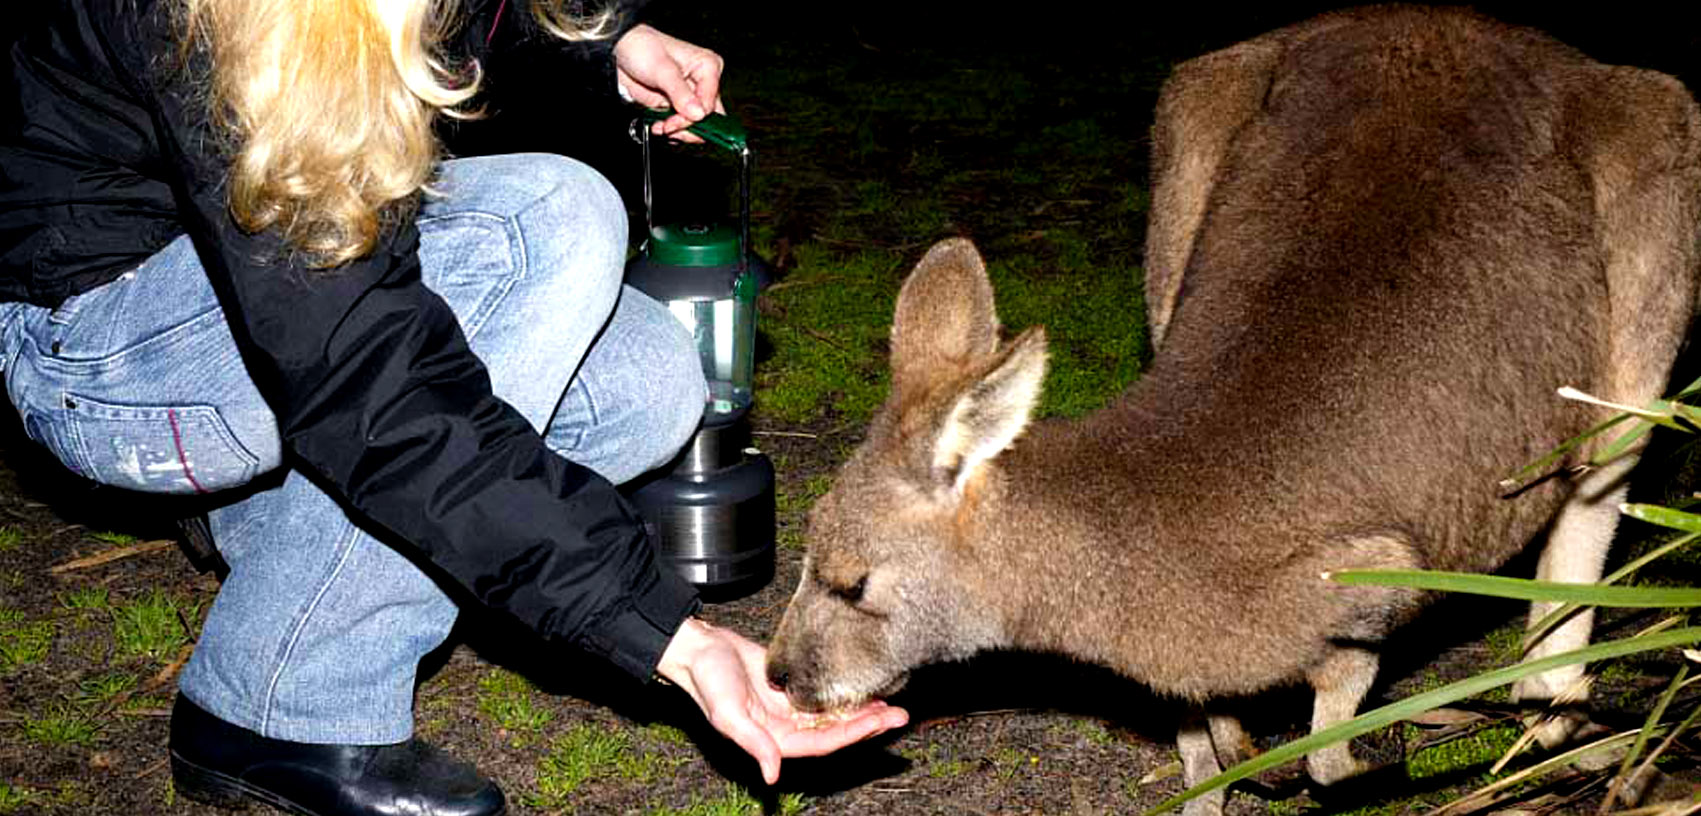 Kangaroo being hand fed on night tour at Moonlit Sanctuary Wildlife Conservation Park